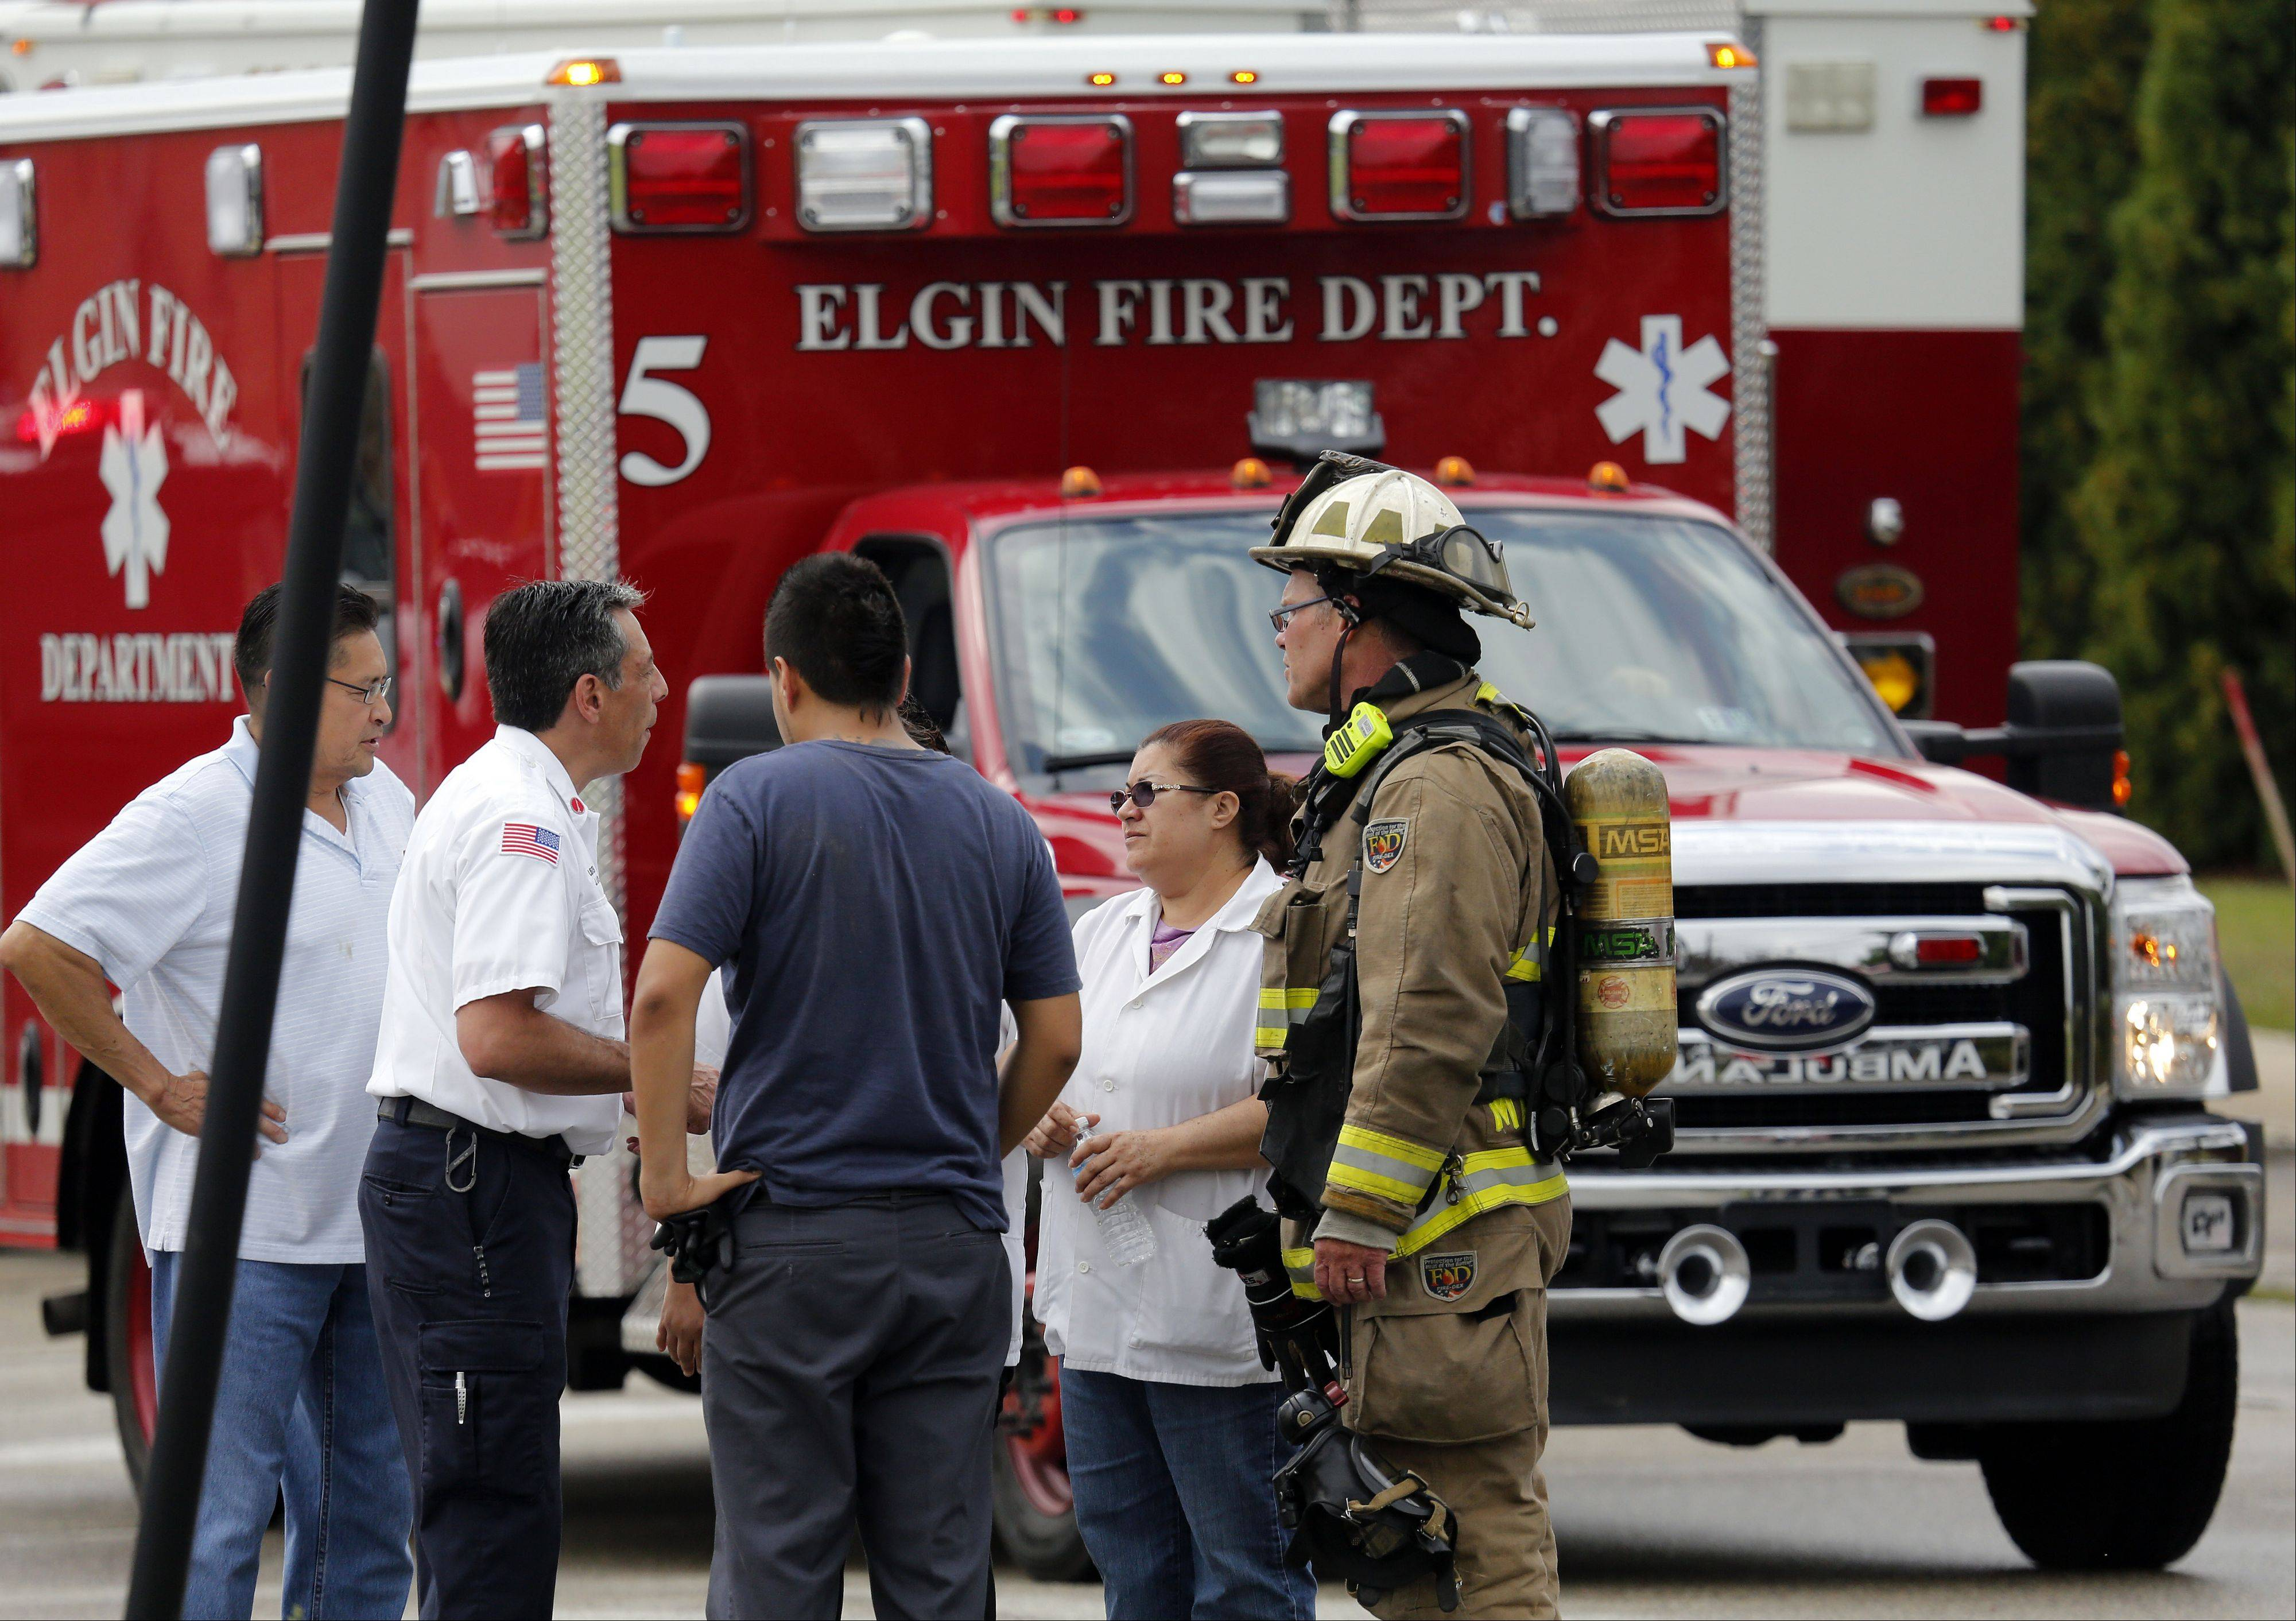 Elgin police and fire officials responded just after 10 a.m. to Capsonic, 460 S. Second St., Elgin, for reports of workers breathing in formaldehyde gas at the factory. A plastics injection molding machine got too hot, and the pellets fed into it burned instead of melting, fire officials said.